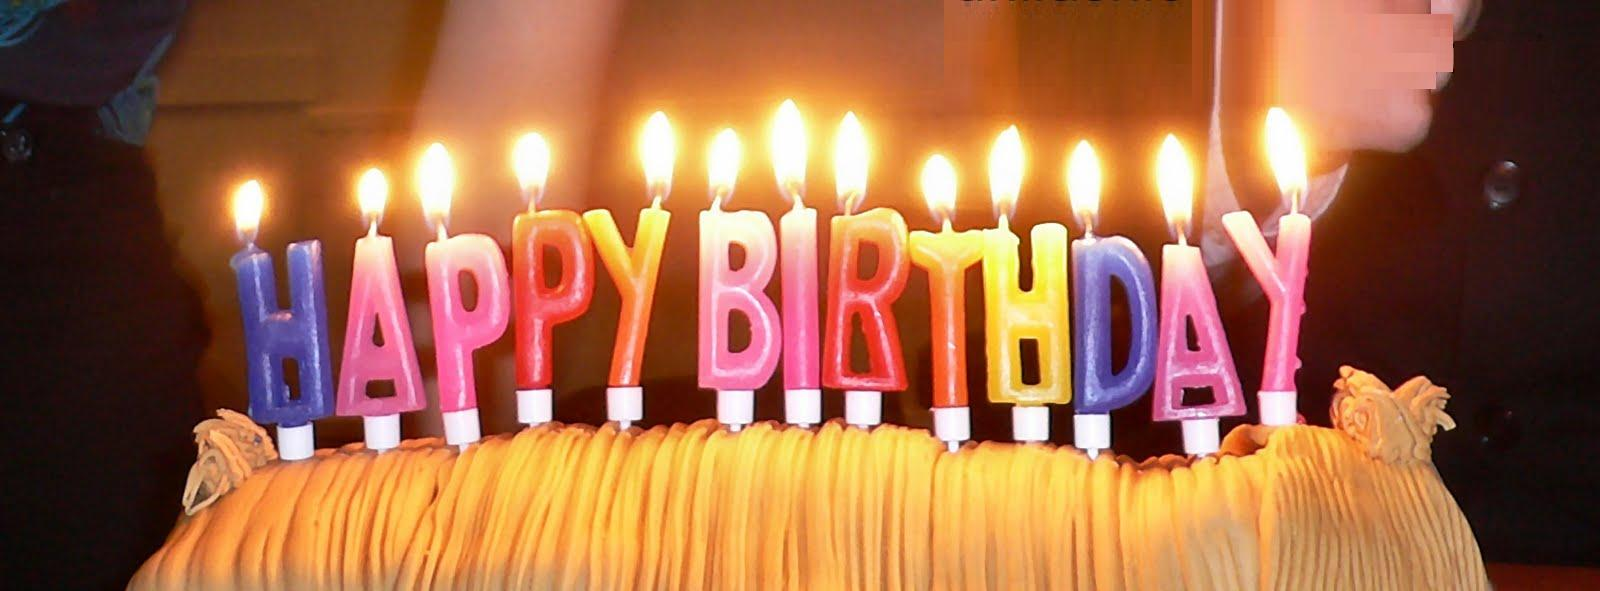 new birthday images free download ; happy-birthday-wallpaper-free-download-20